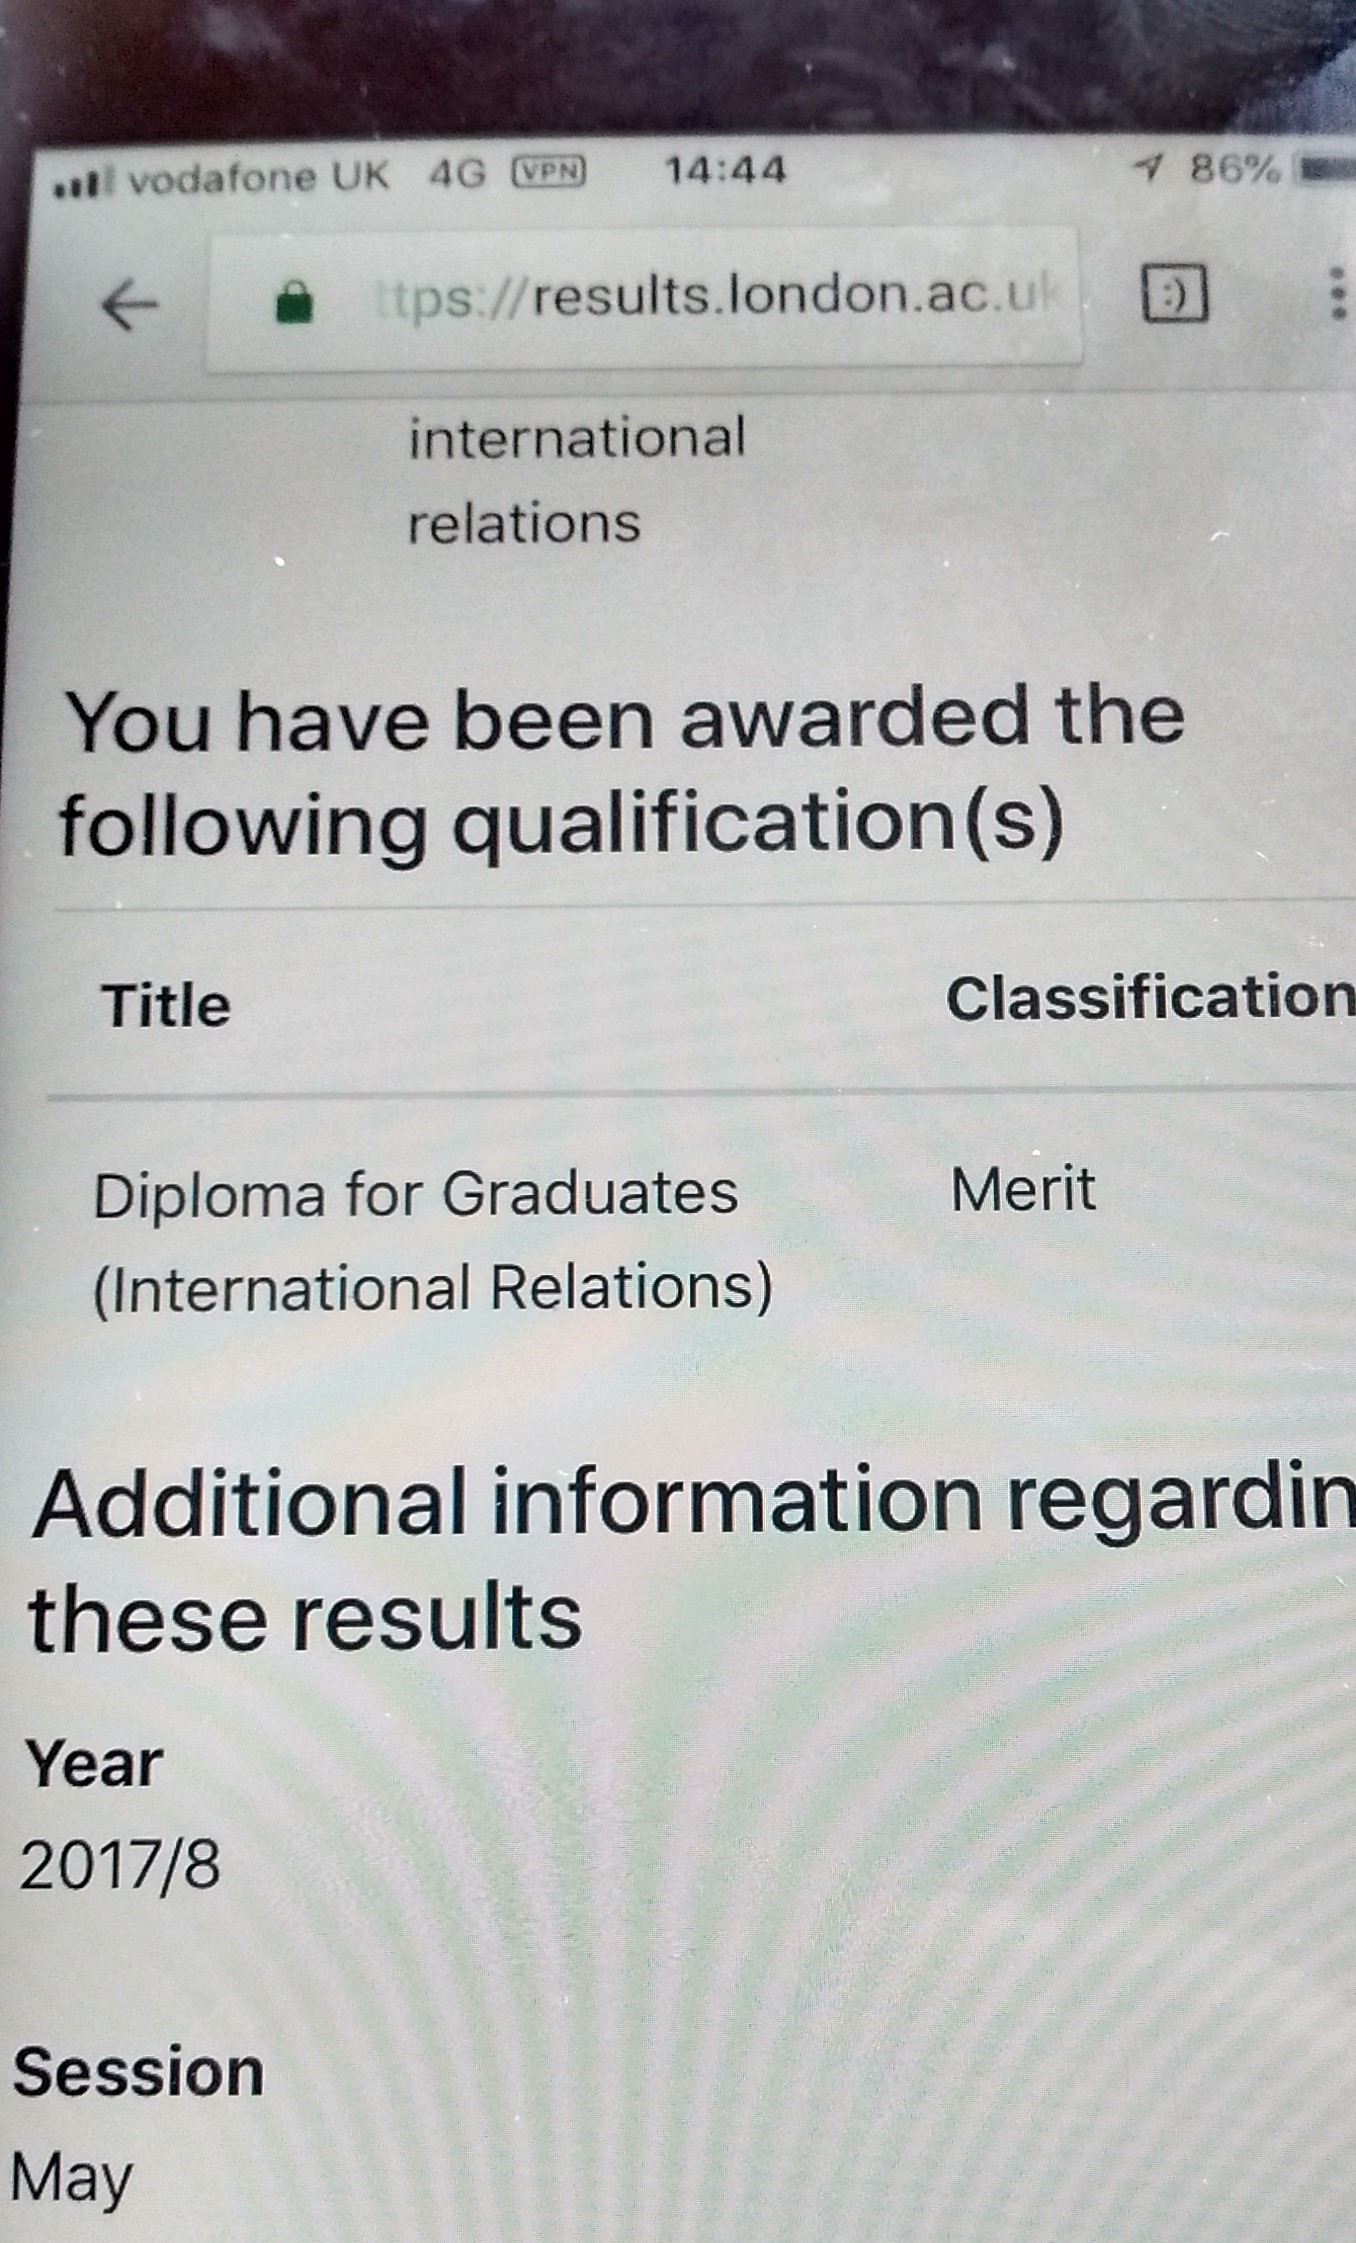 I have graduated with a merit from the LSE and it's thanks to my